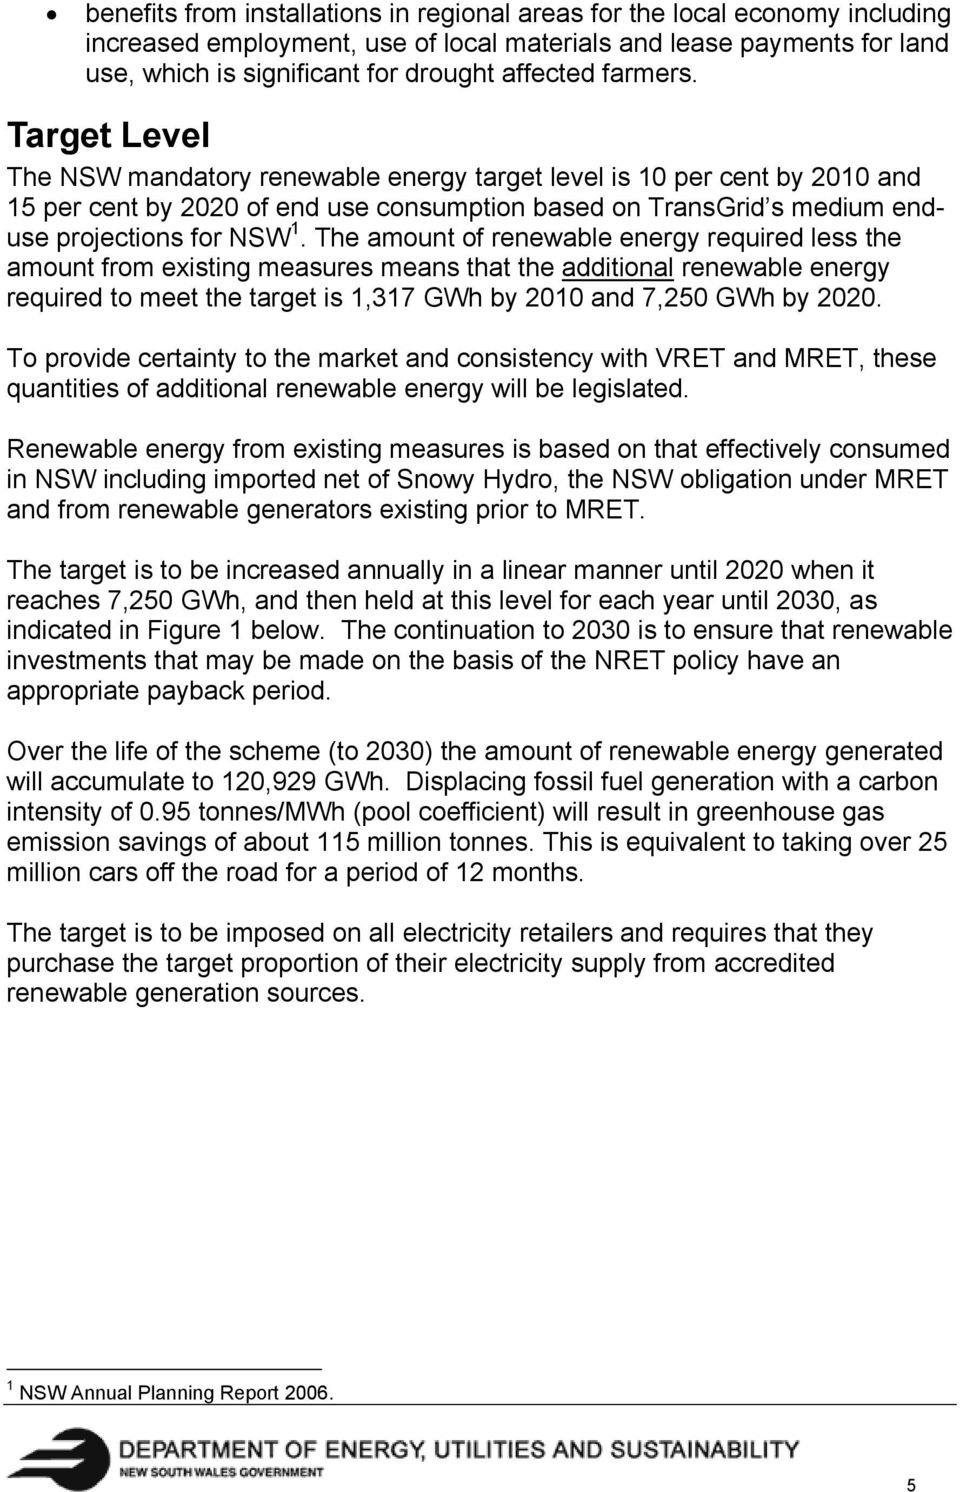 The amount of renewable energy required less the amount from existing measures means that the additional renewable energy required to meet the target is 1,317 GWh by 2010 and 7,250 GWh by 2020.